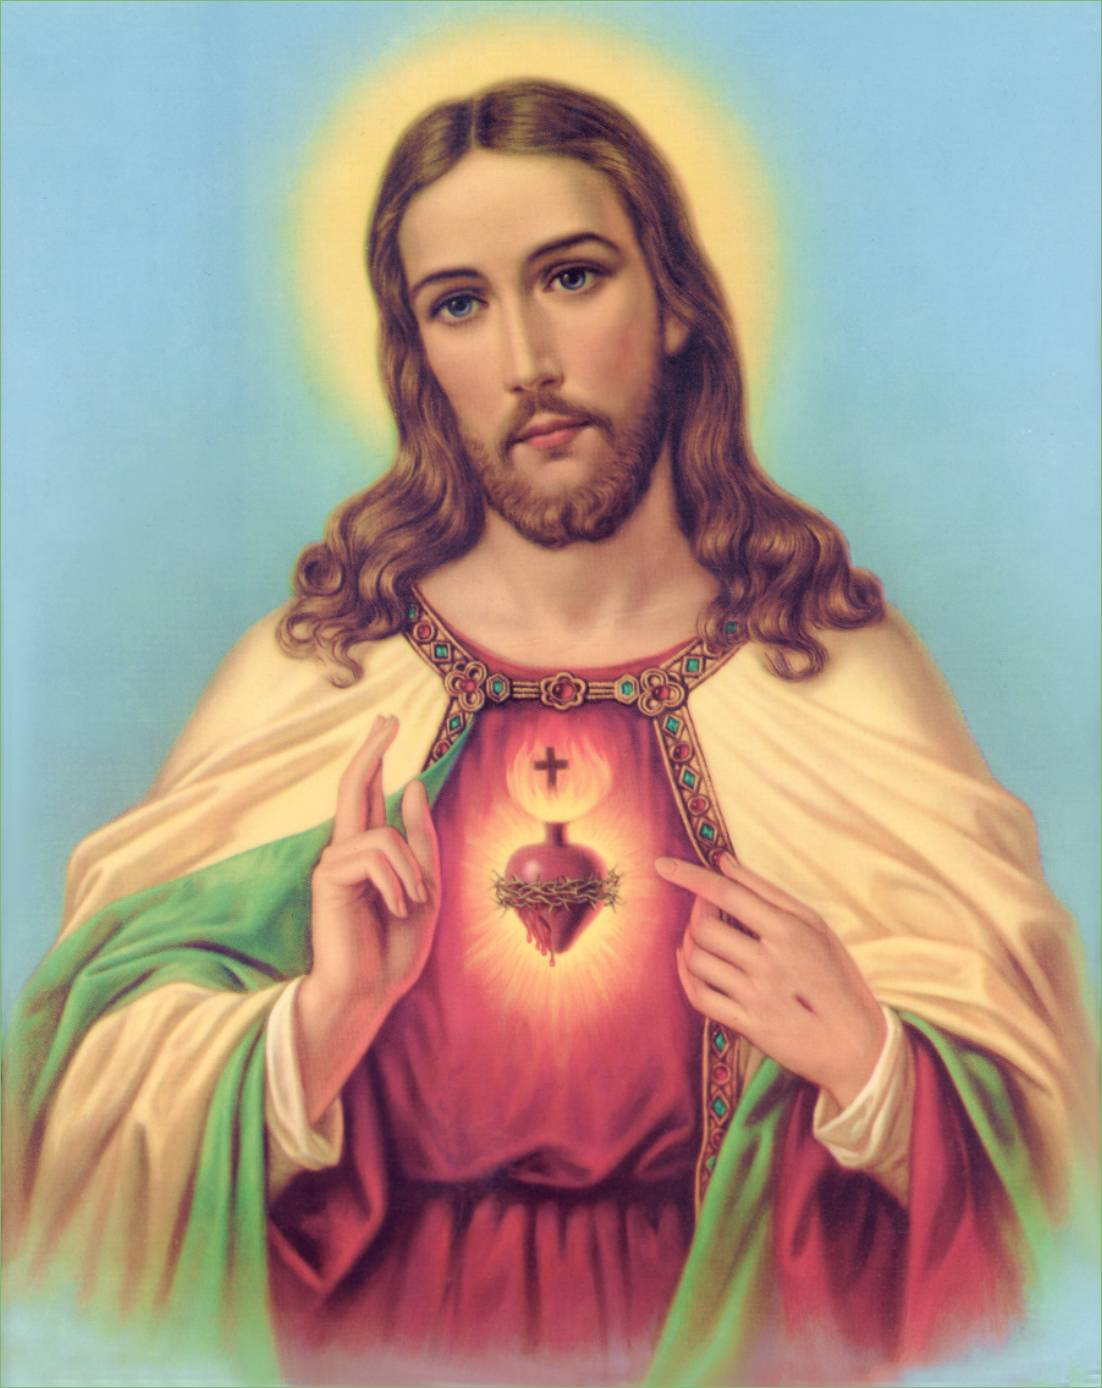 5e6mzj2 sacred heart of jesus wallpaper